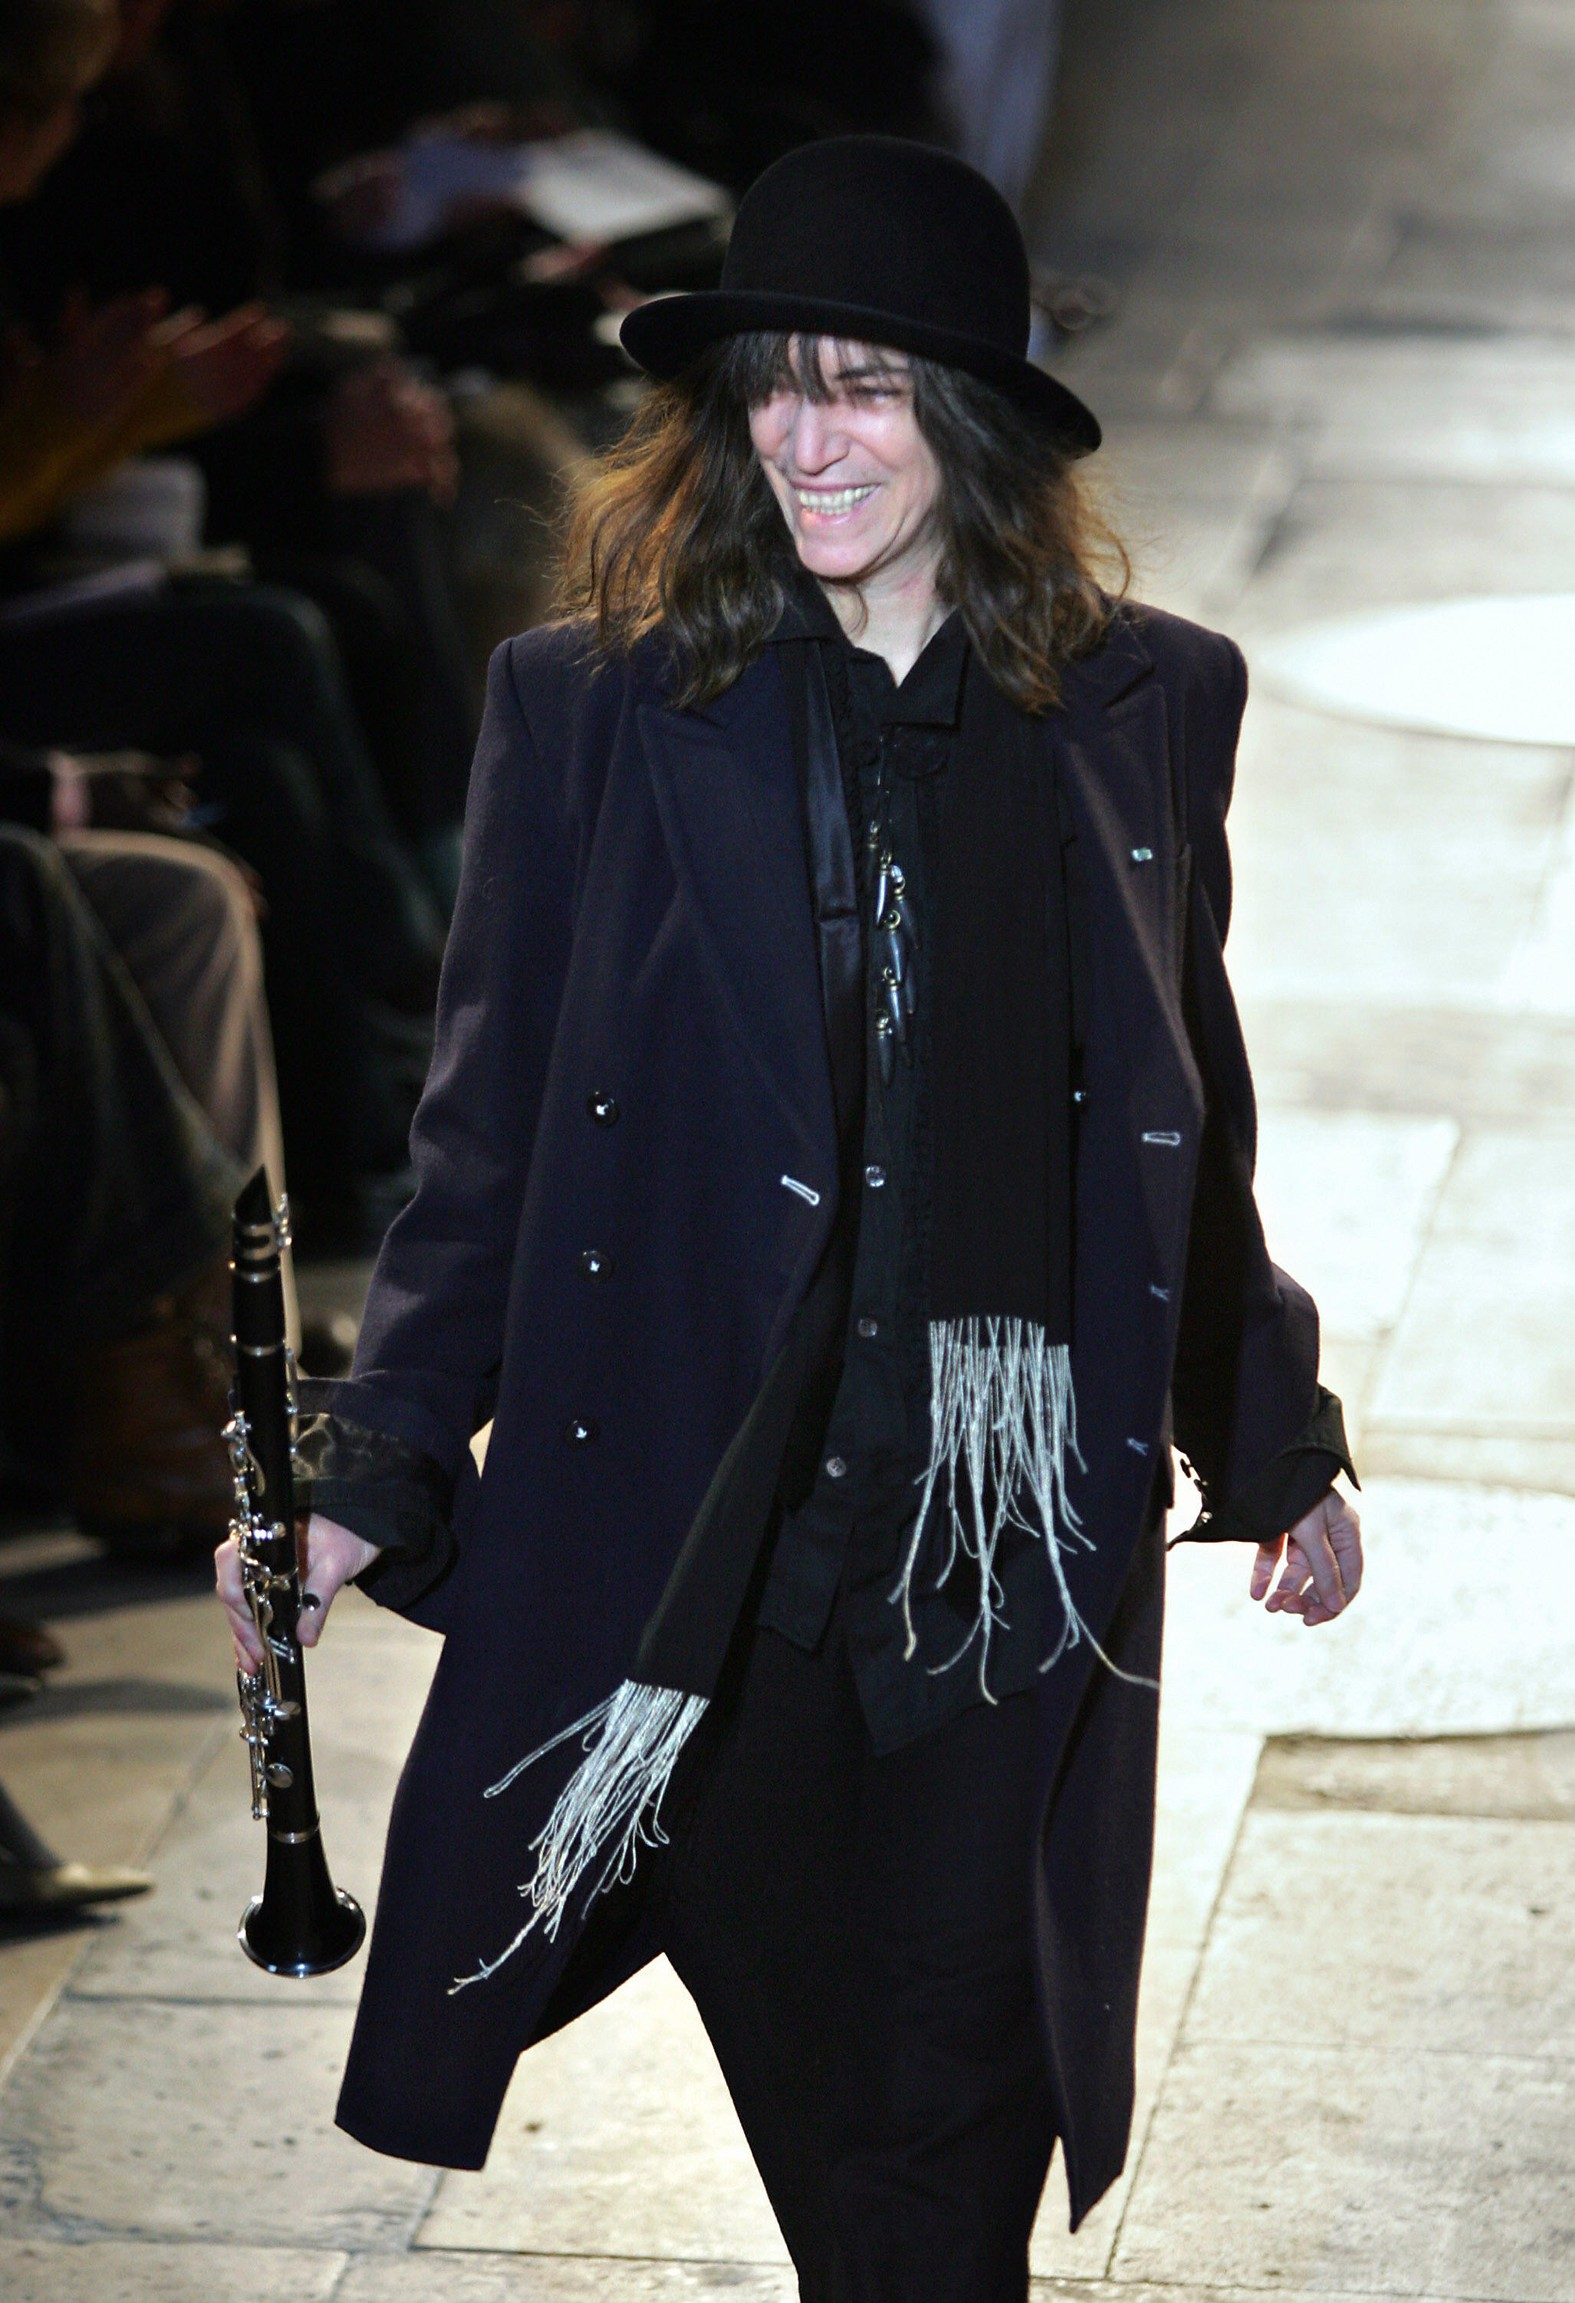 patti smith divatbemutato